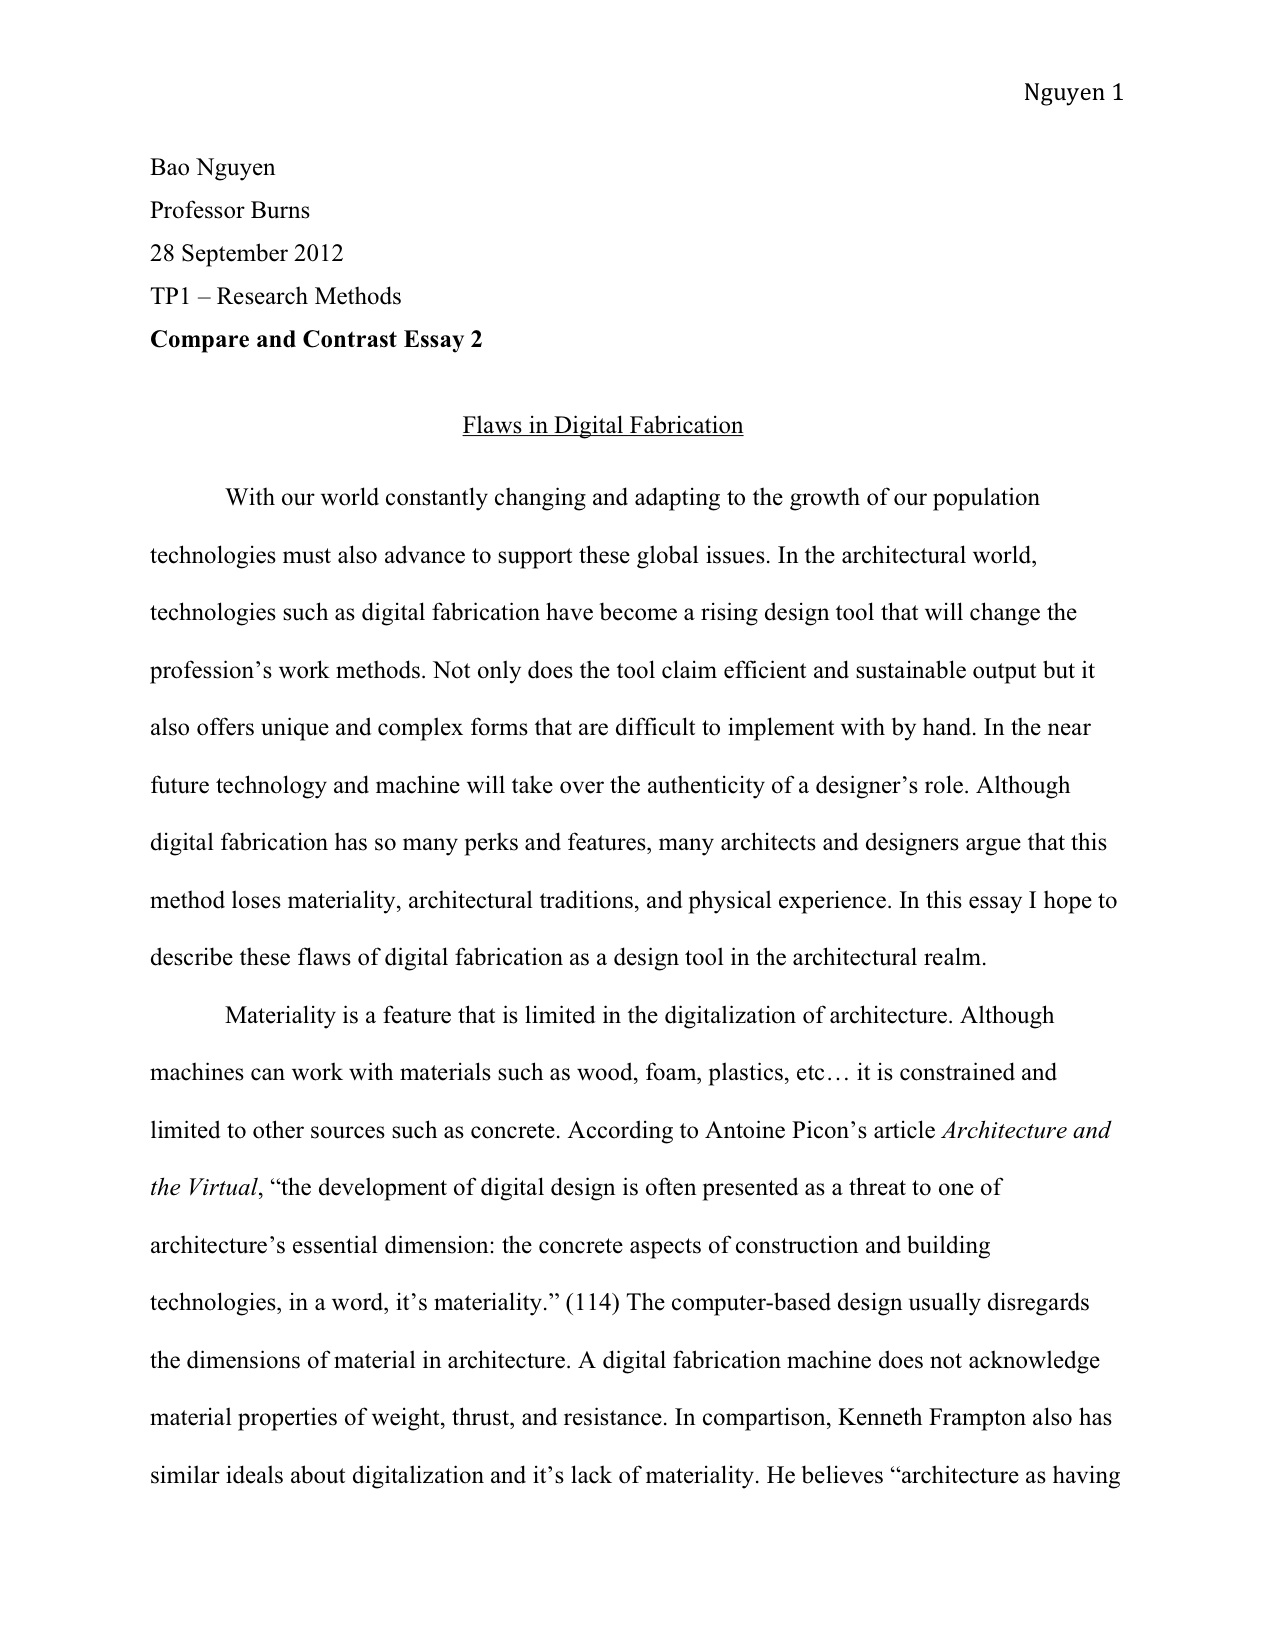 005 How To Write An Essay Example Tp1 3 Shocking About Myself For A Scholarship Excellent Conclusion Pdf Full